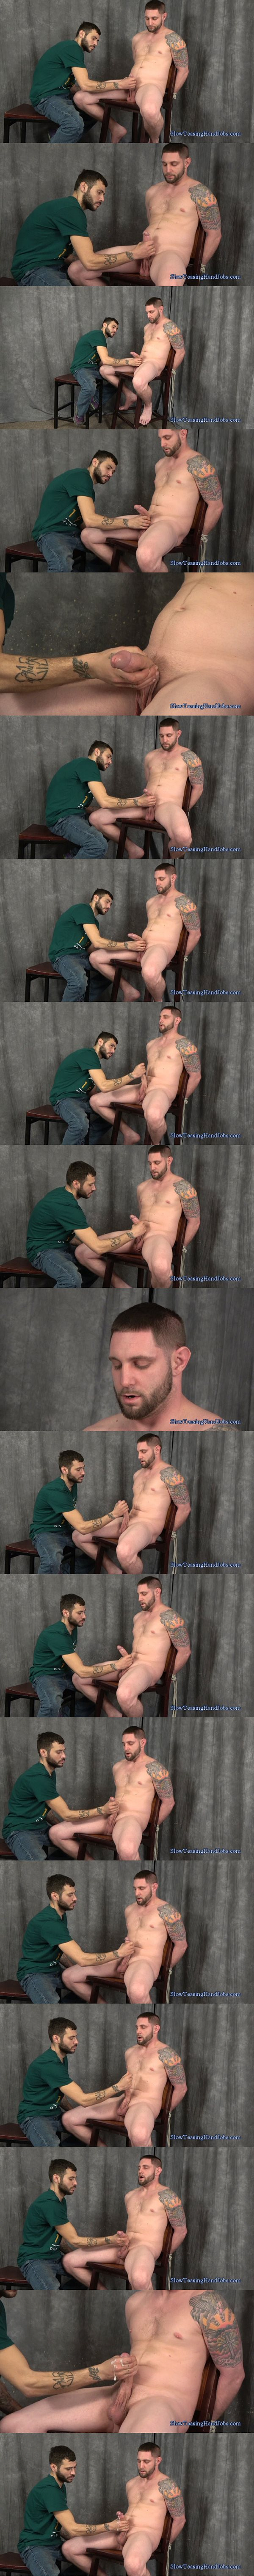 Big dicked straight guy Jay Rising slowly jerked off by Nick at Slowteasinghandjobs 02